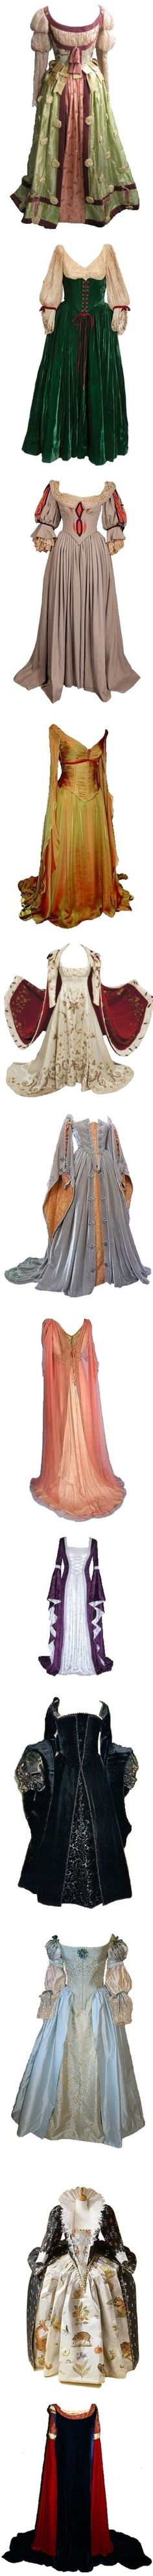 Medieval and Renaissance Inspired Fashions pt 6 by roseredrum on Polyvore featuring dresses, gowns, long dress, medieval, costume, costumes, medieval dresses, historical, long dresses and epoca--  Shorten the top two designs and you can have a hobbit-esc type costume :)